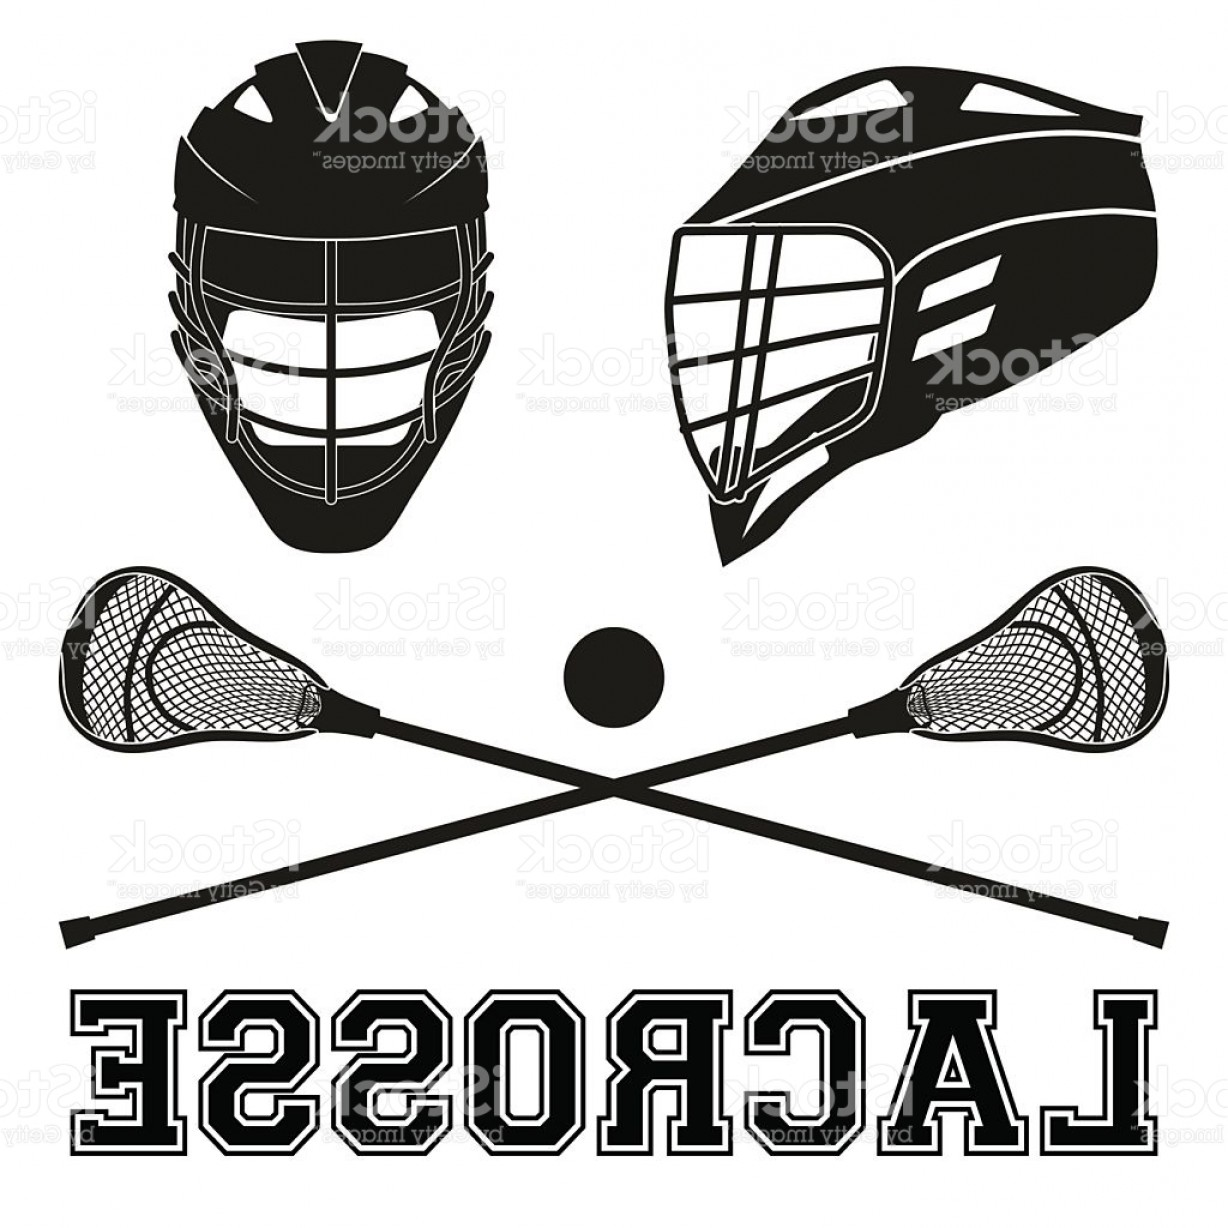 Lacrosse Stick Vector: Lacrosse Sticks And Helmets Flat Style Gm